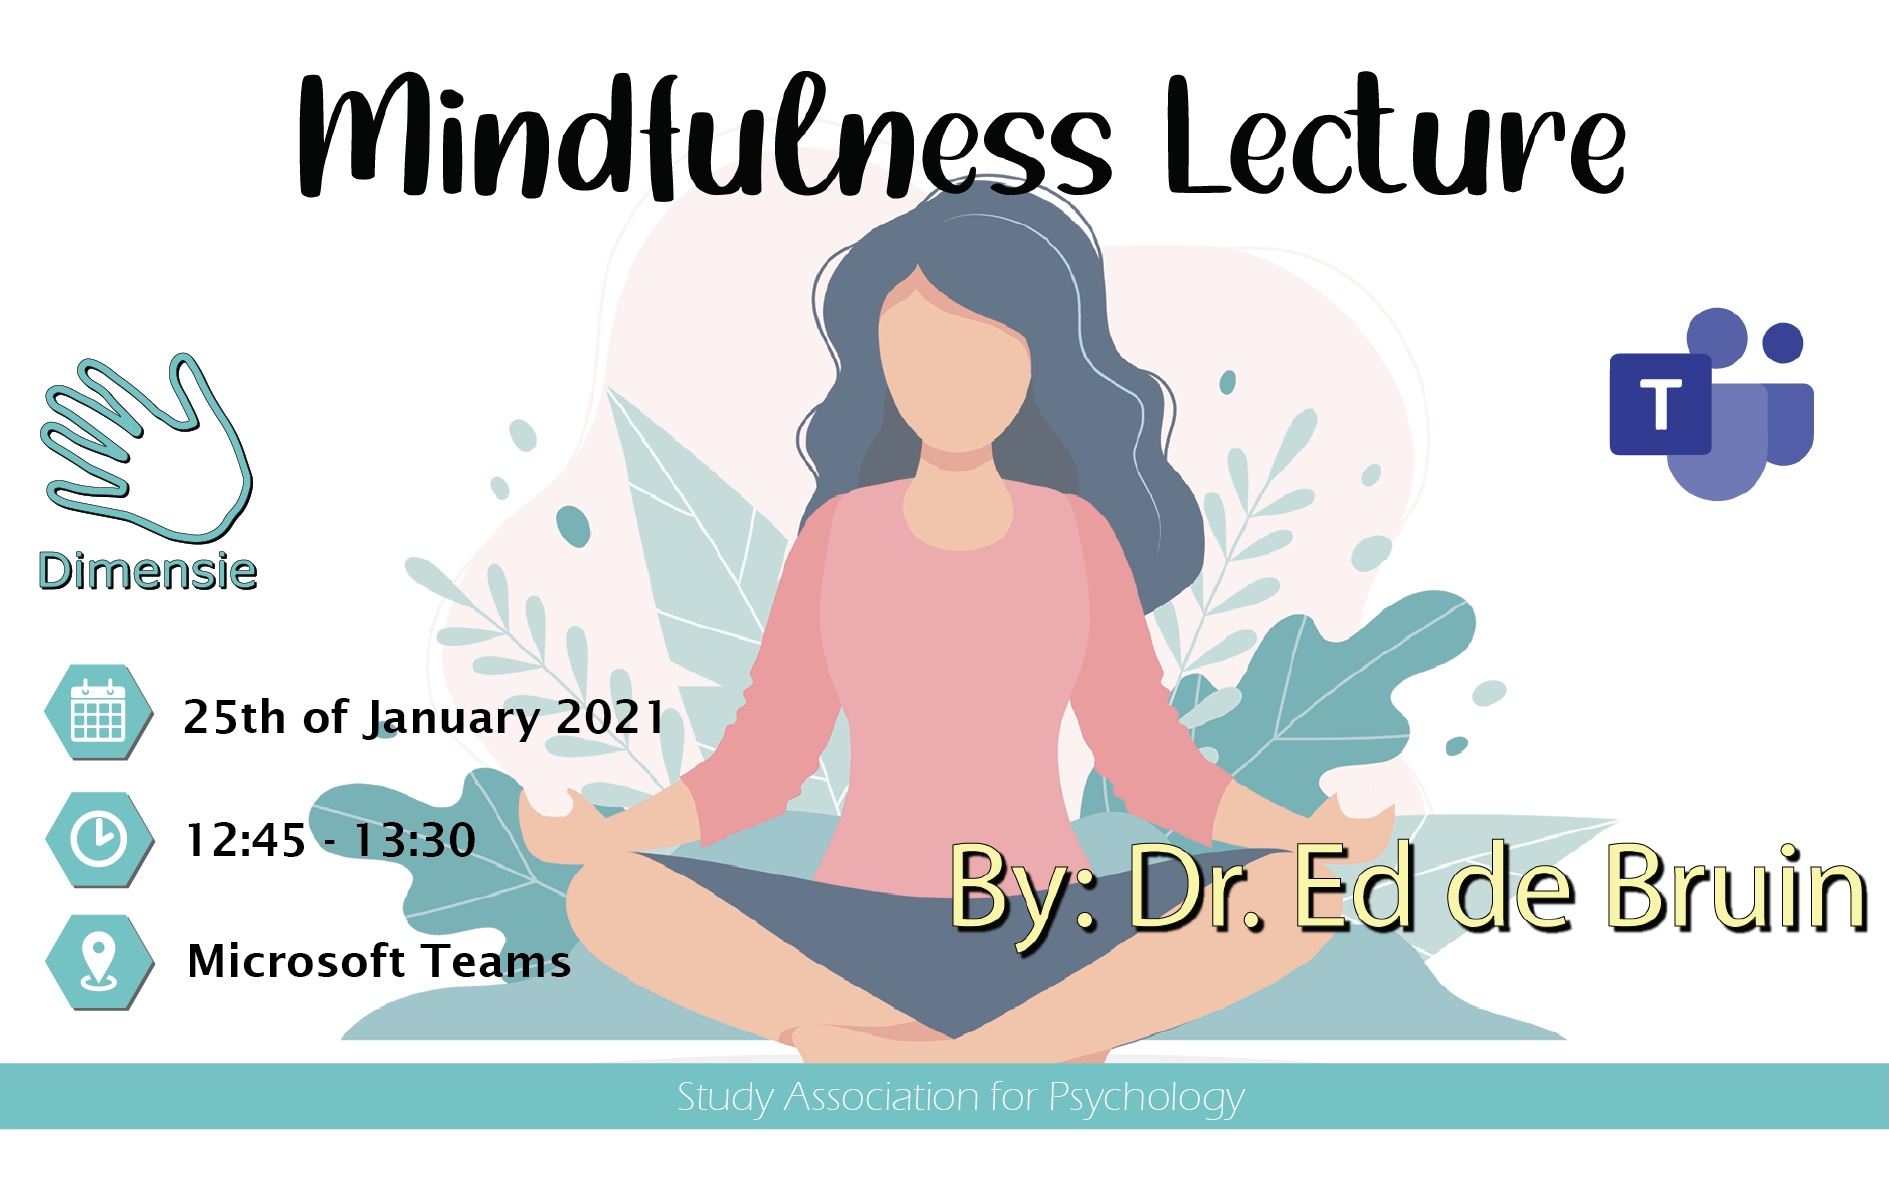 Lunch Lecture: Mindfulness